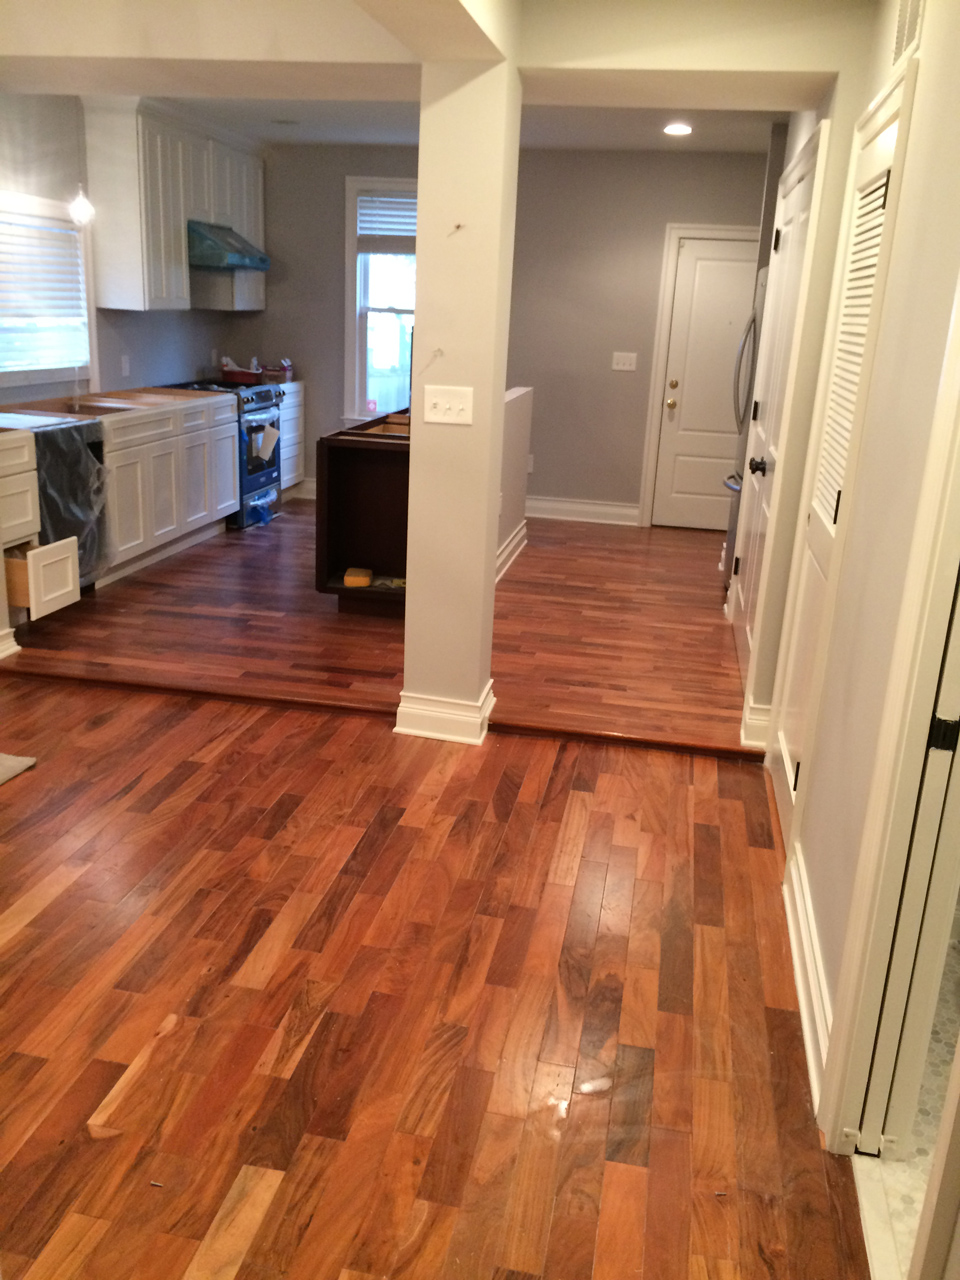 Wood Floor in Kitchen